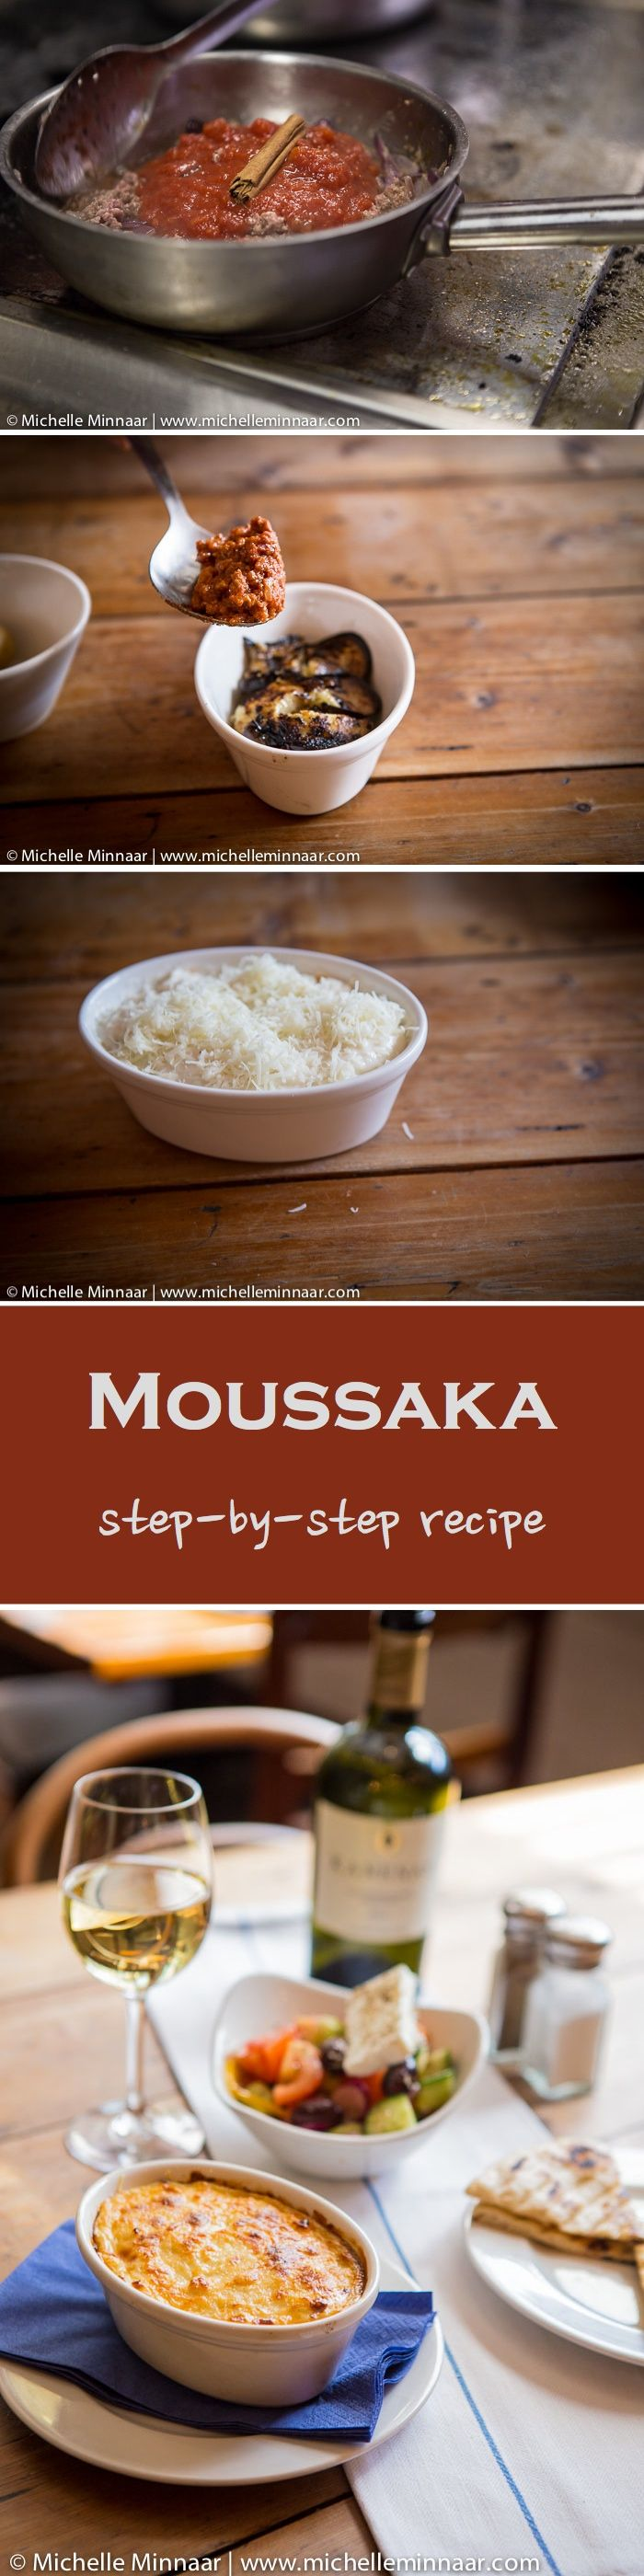 Learn How To Make The Real Greek's Moussaka. It's simple and you can make cute individual portions! (Gluten Free) I love Greek Food and this recipe is easy and delicious!~GF Cheryl~